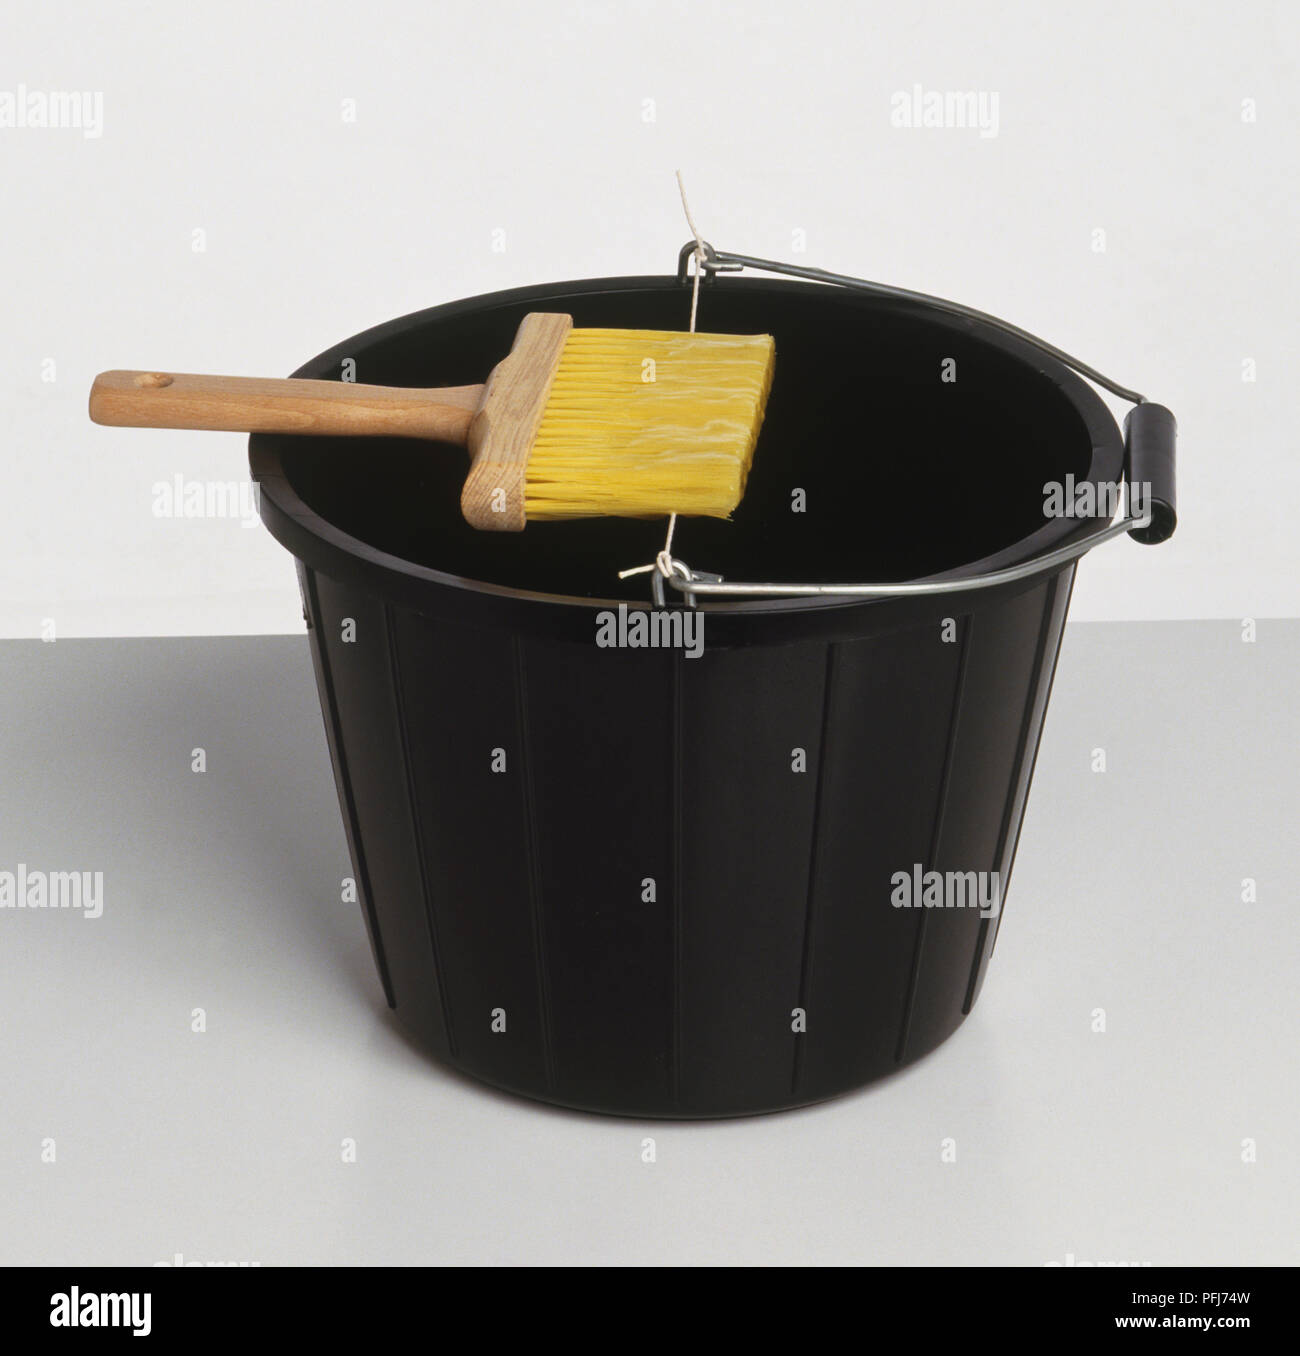 Wallpaper Paste Bucket High Resolution Stock Photography And Images Alamy